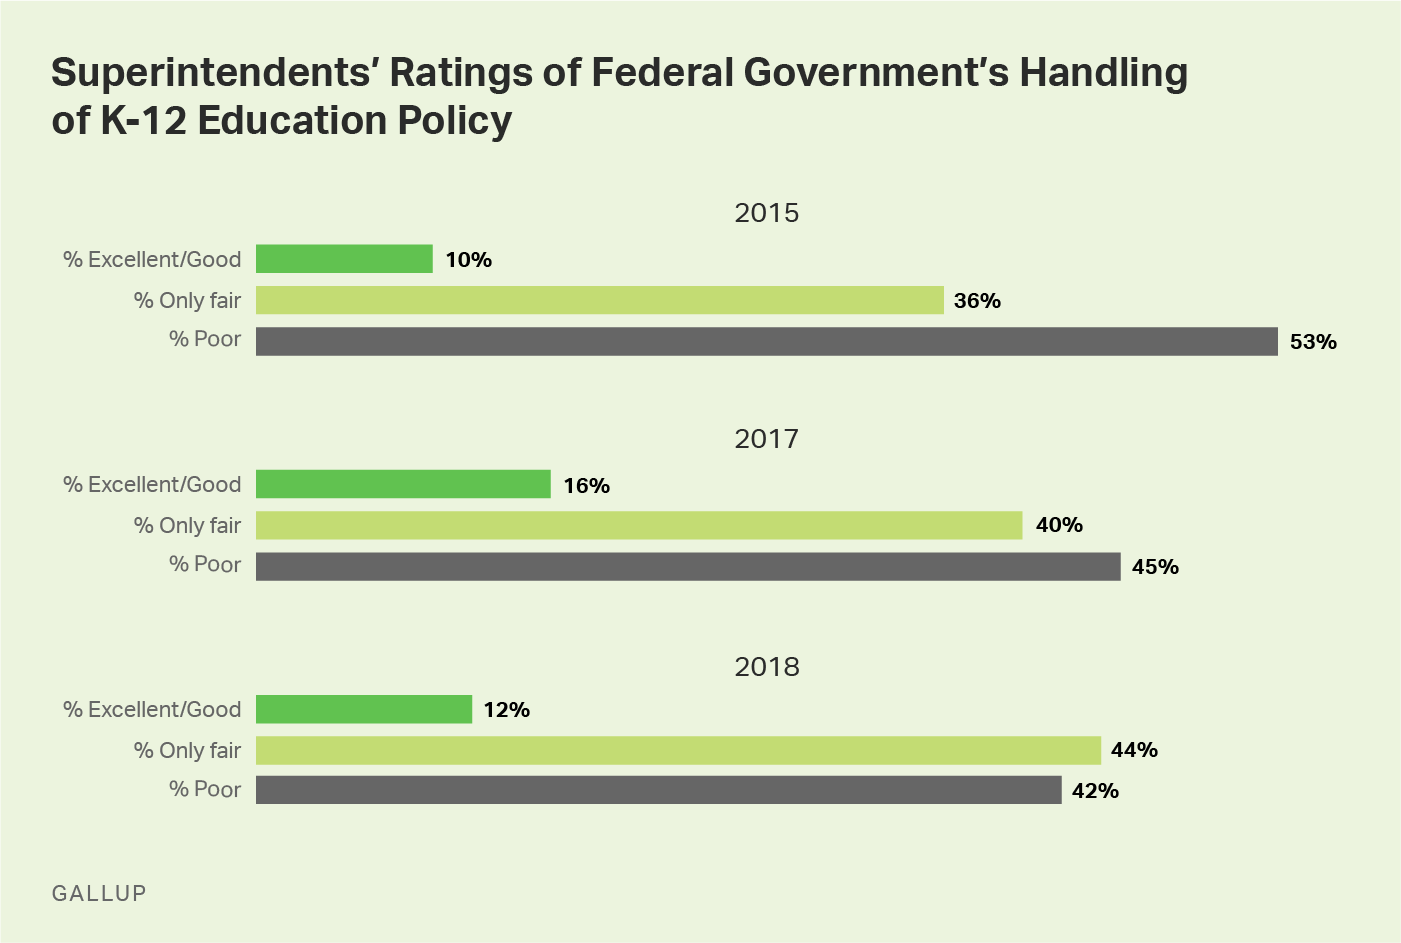 Custom Graphic Showing Superintendents' Ratings of Federal Government's Handling of Education Policy